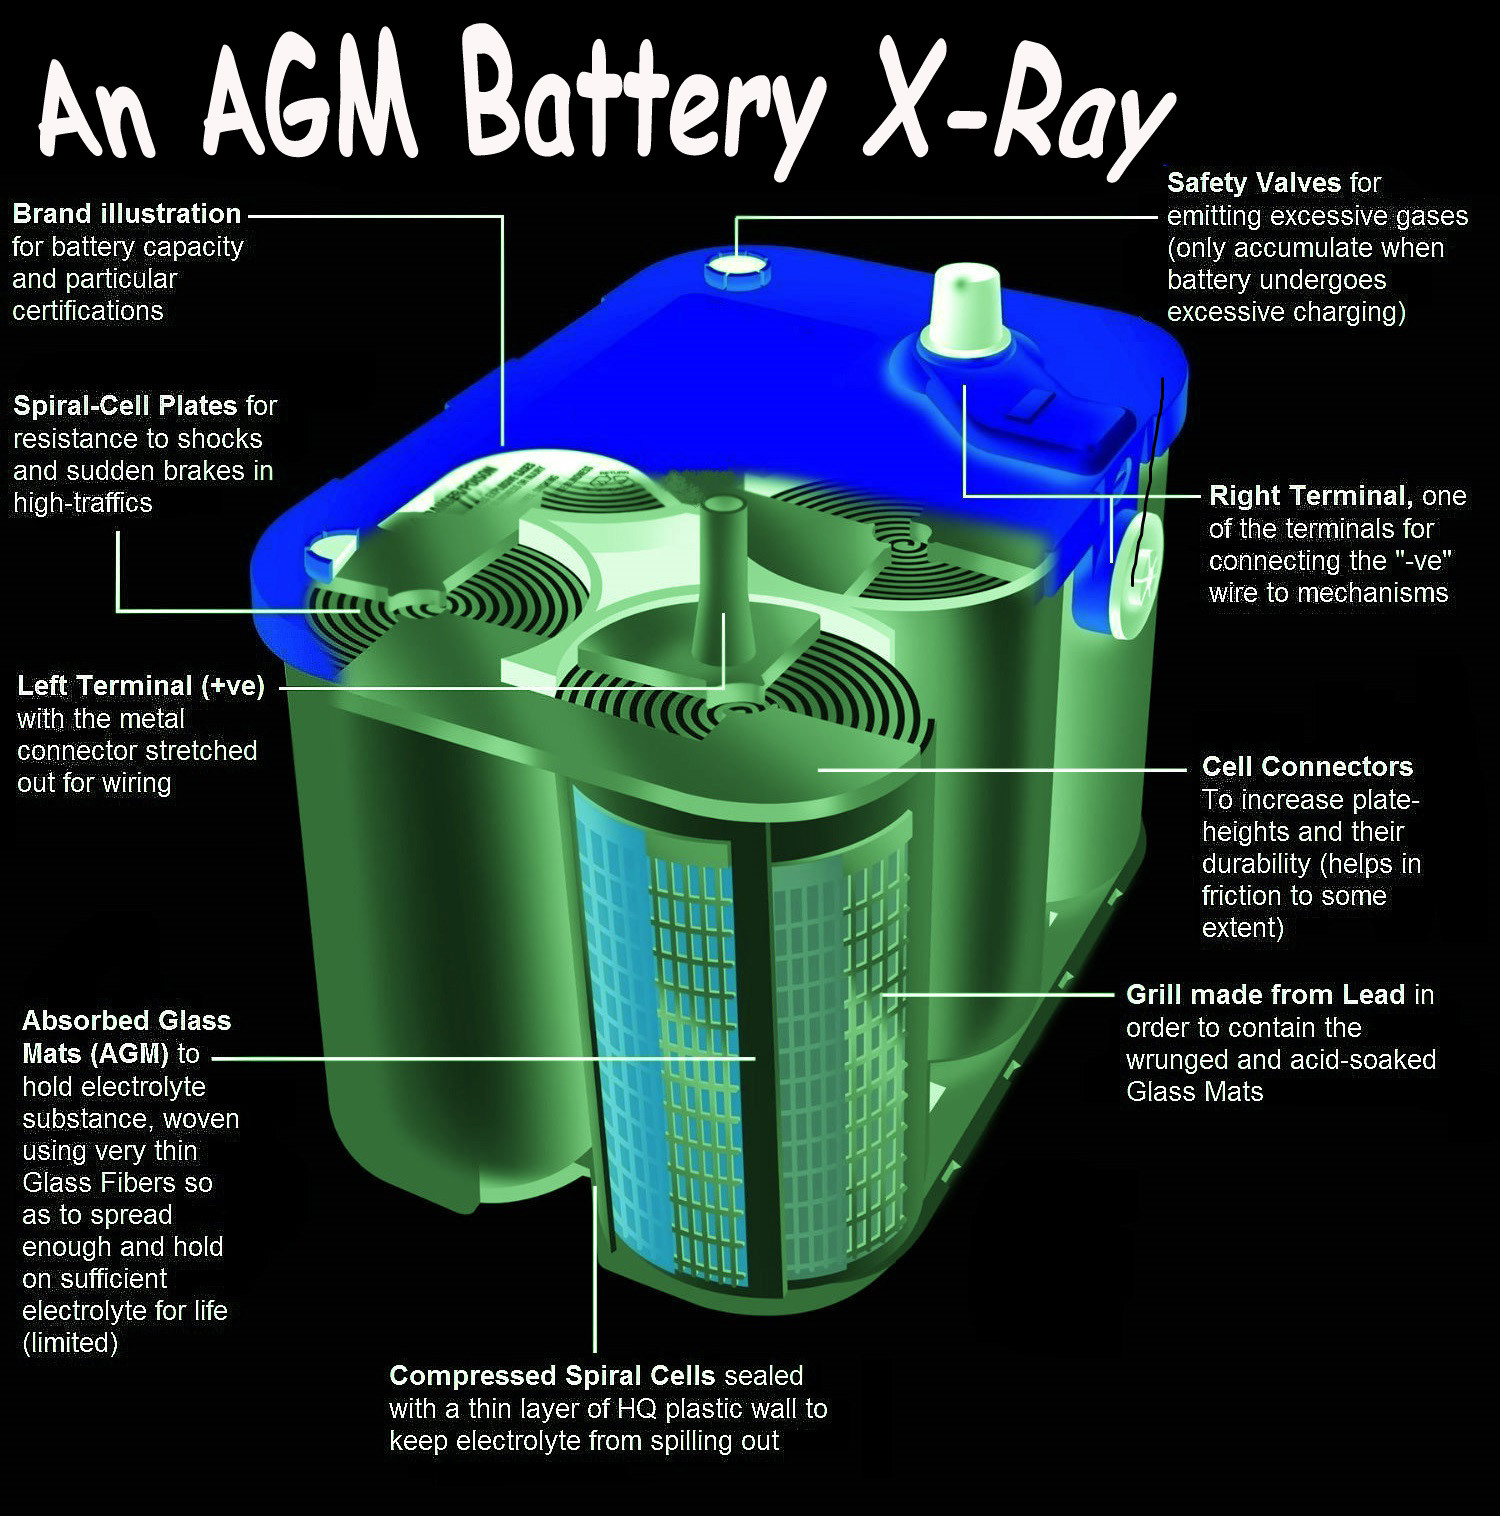 Battery X-Ray Infographic